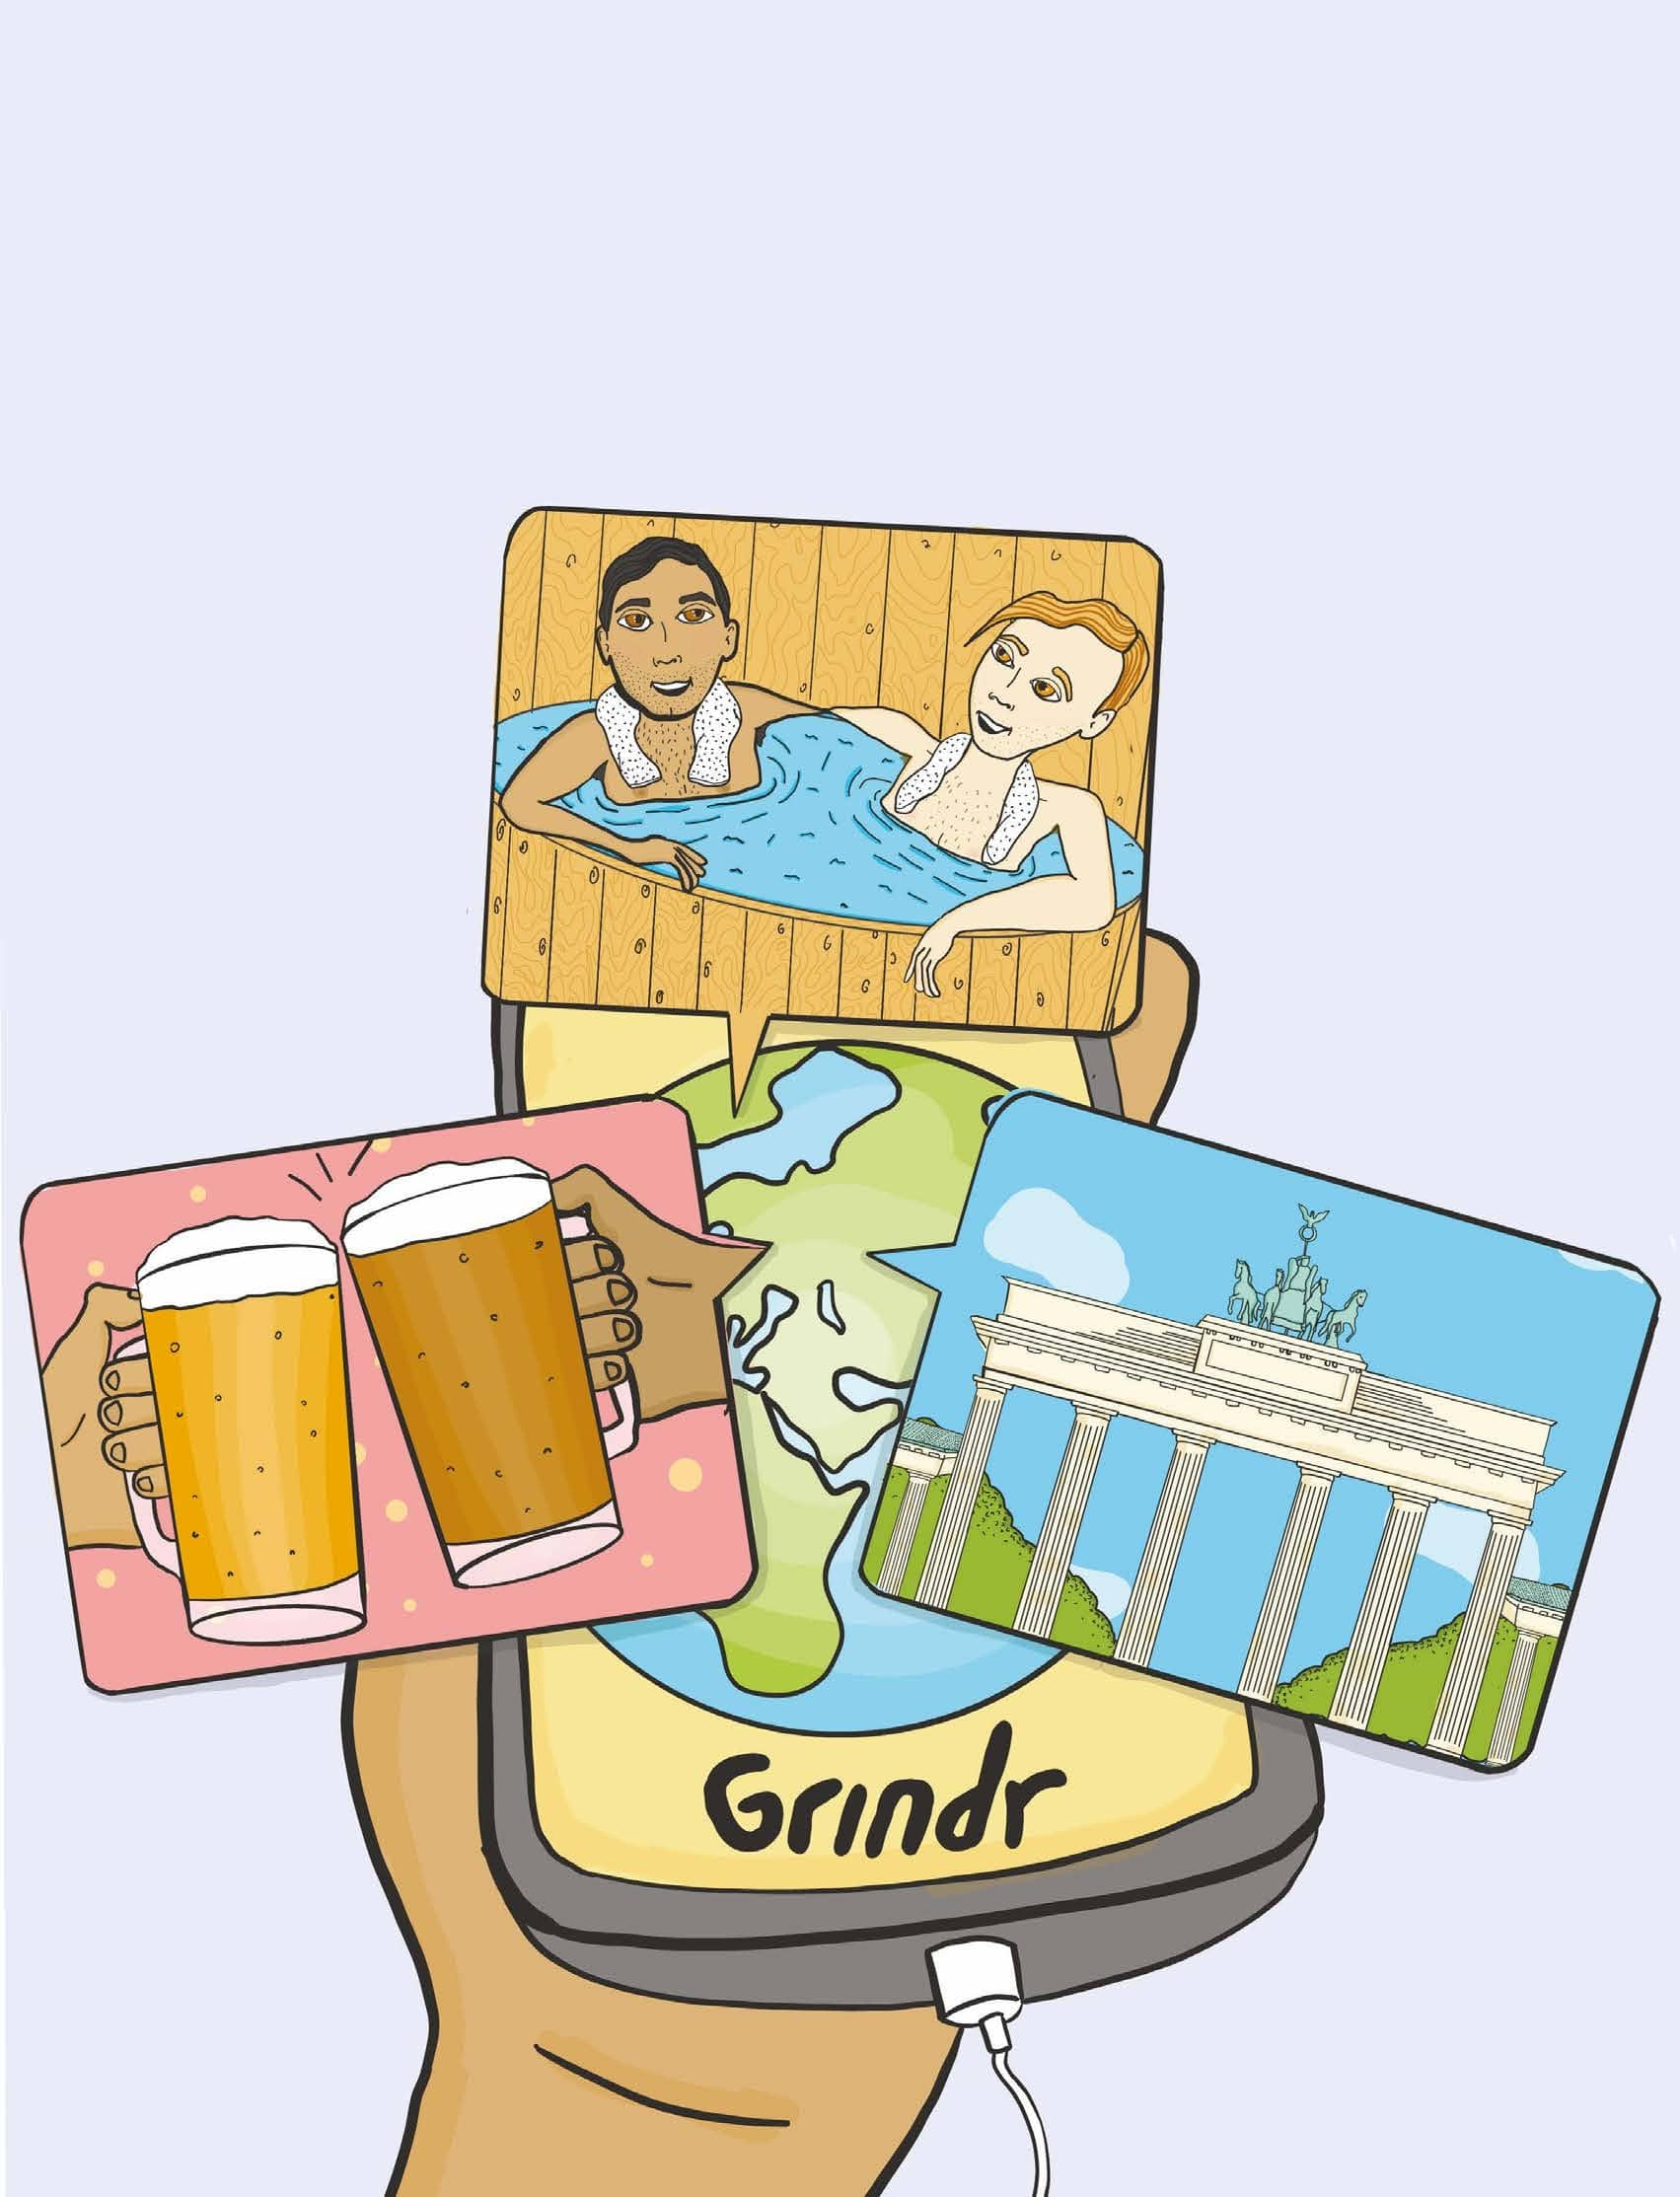 The Grindr Guidebook